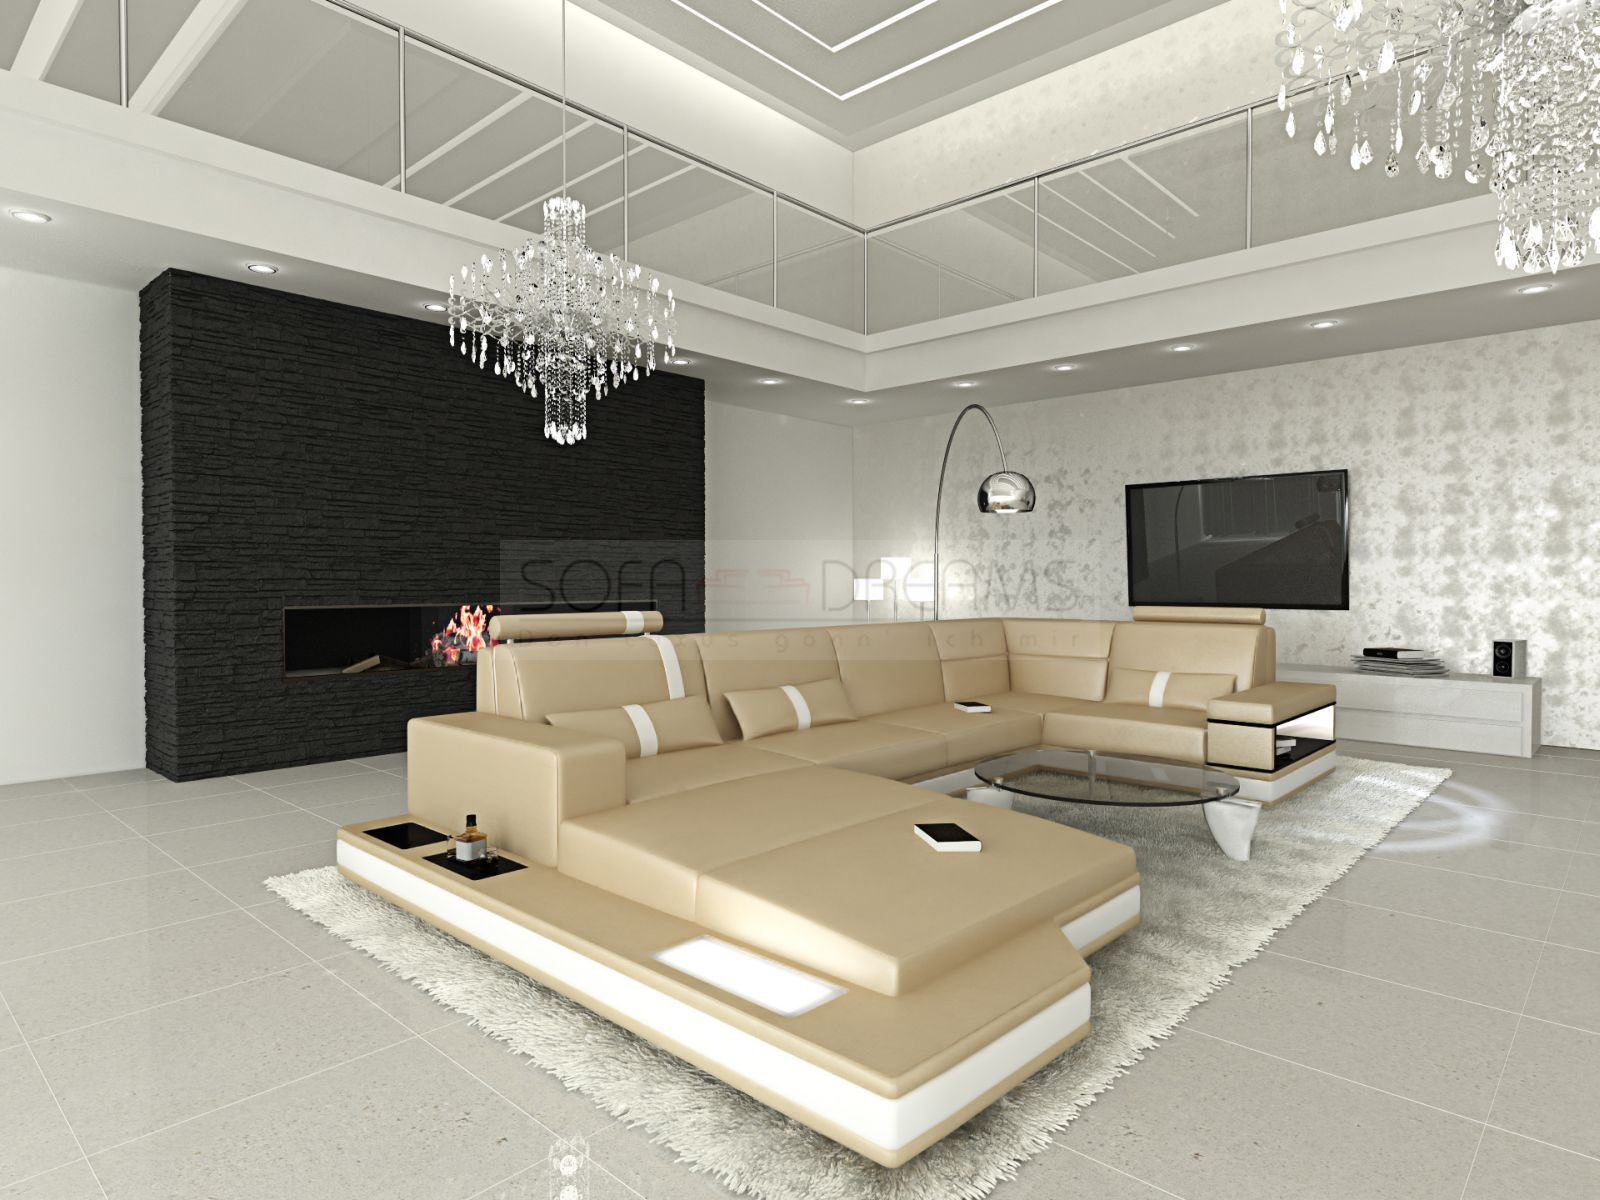 designer sofa. beige brown sofa in luxurious interior setting